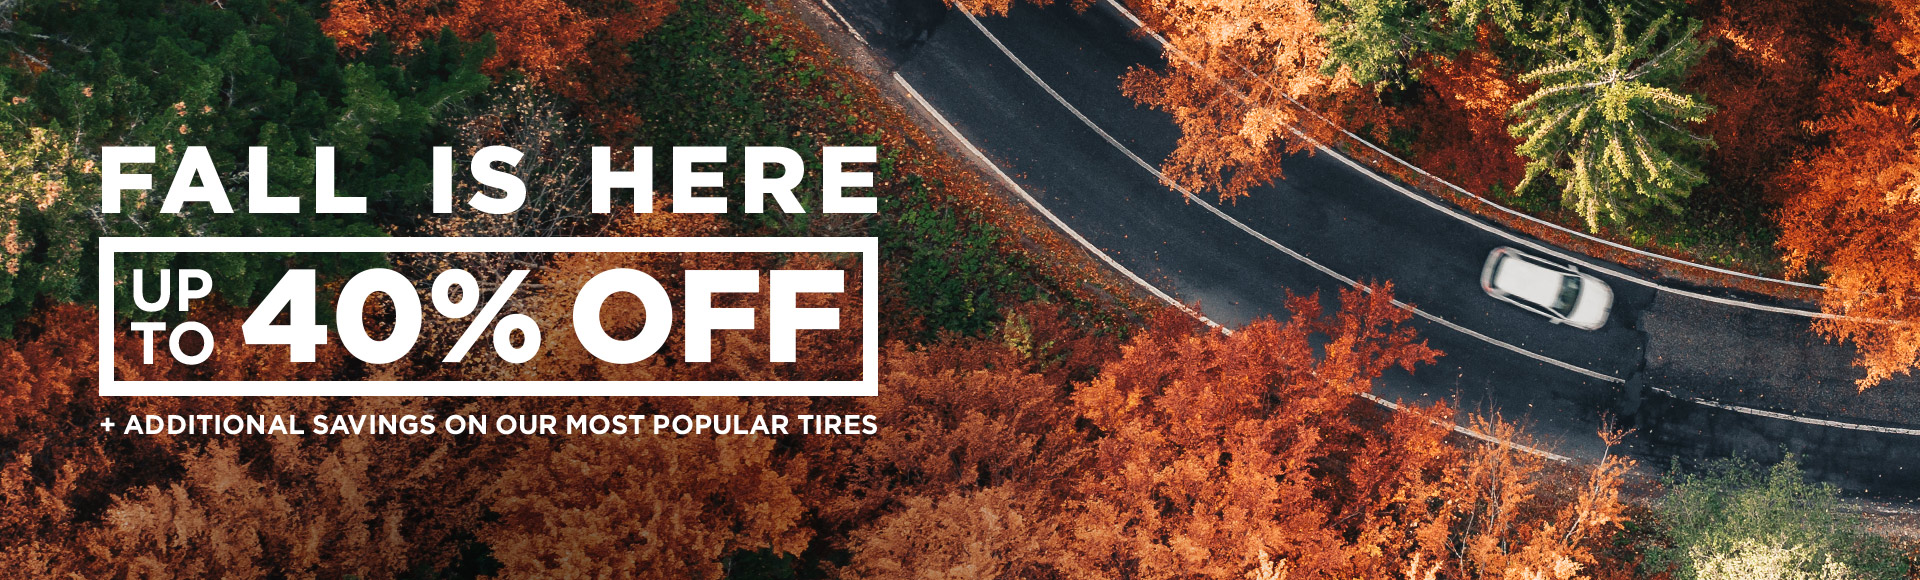 Free 2-day shipping on select tires + 20% off flat rate installation on select tires + free no-hassle returns